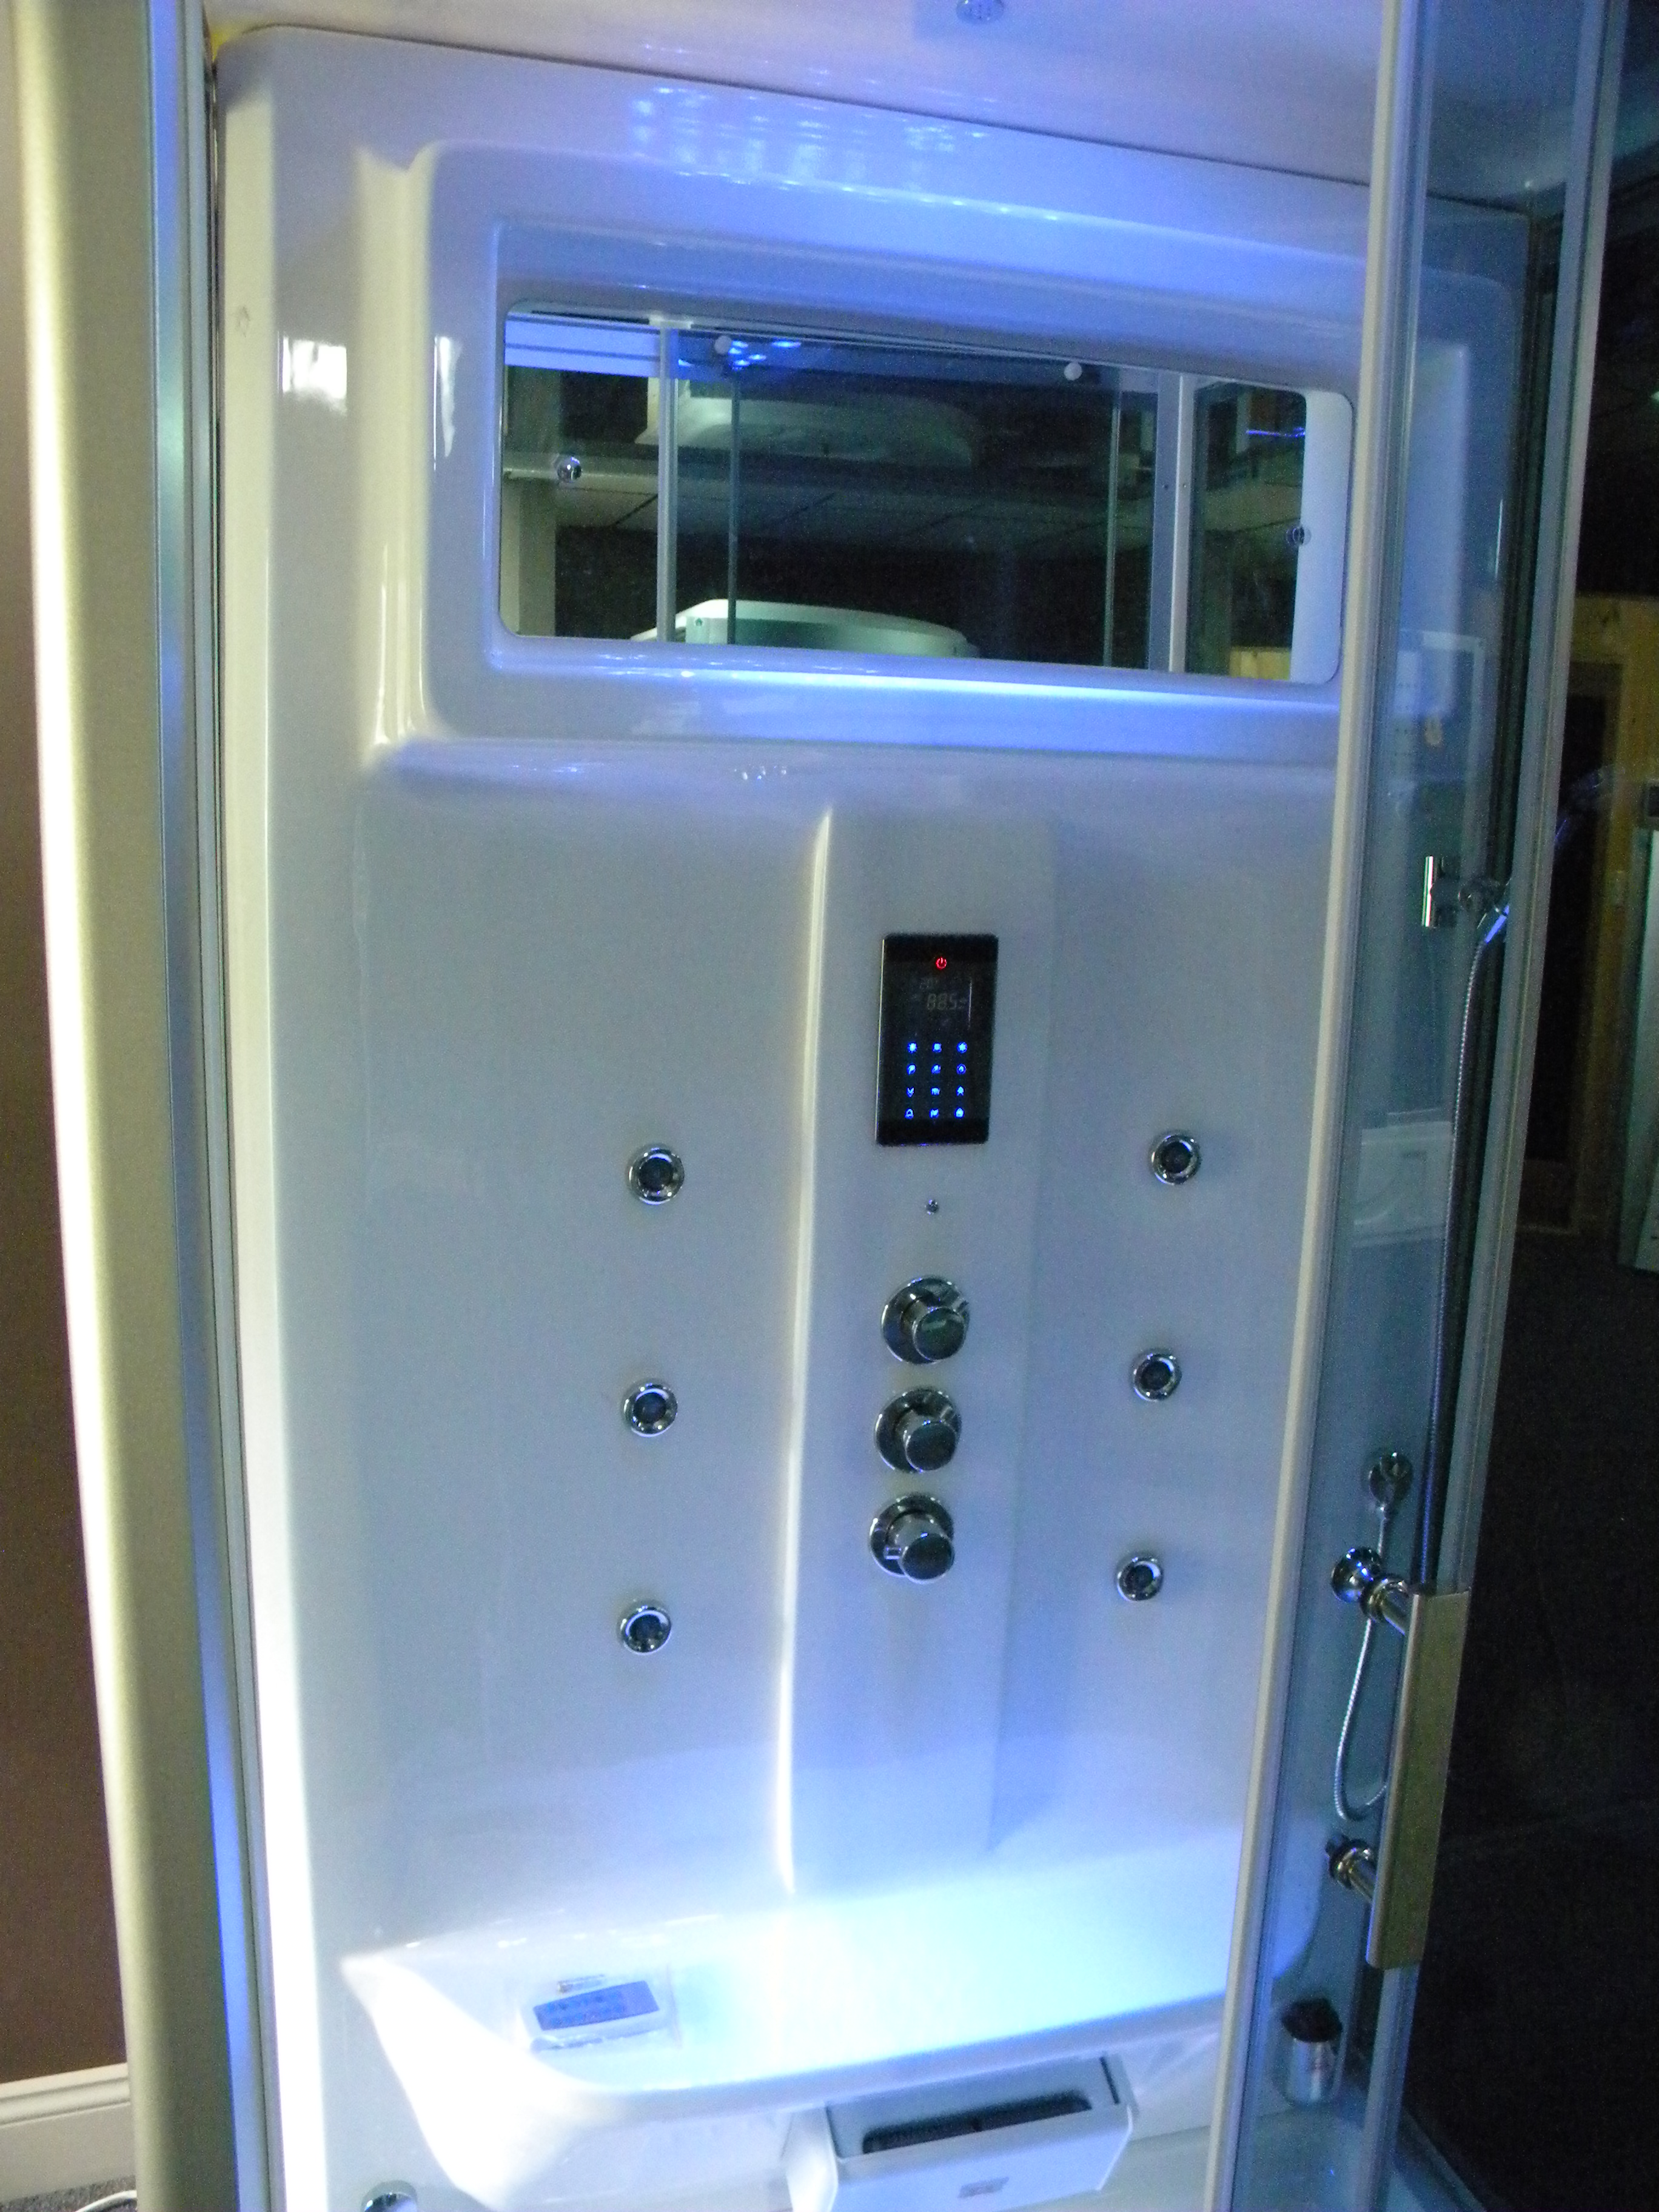 Steam Shower Room 09007 With Aromatherapy Ozone Best